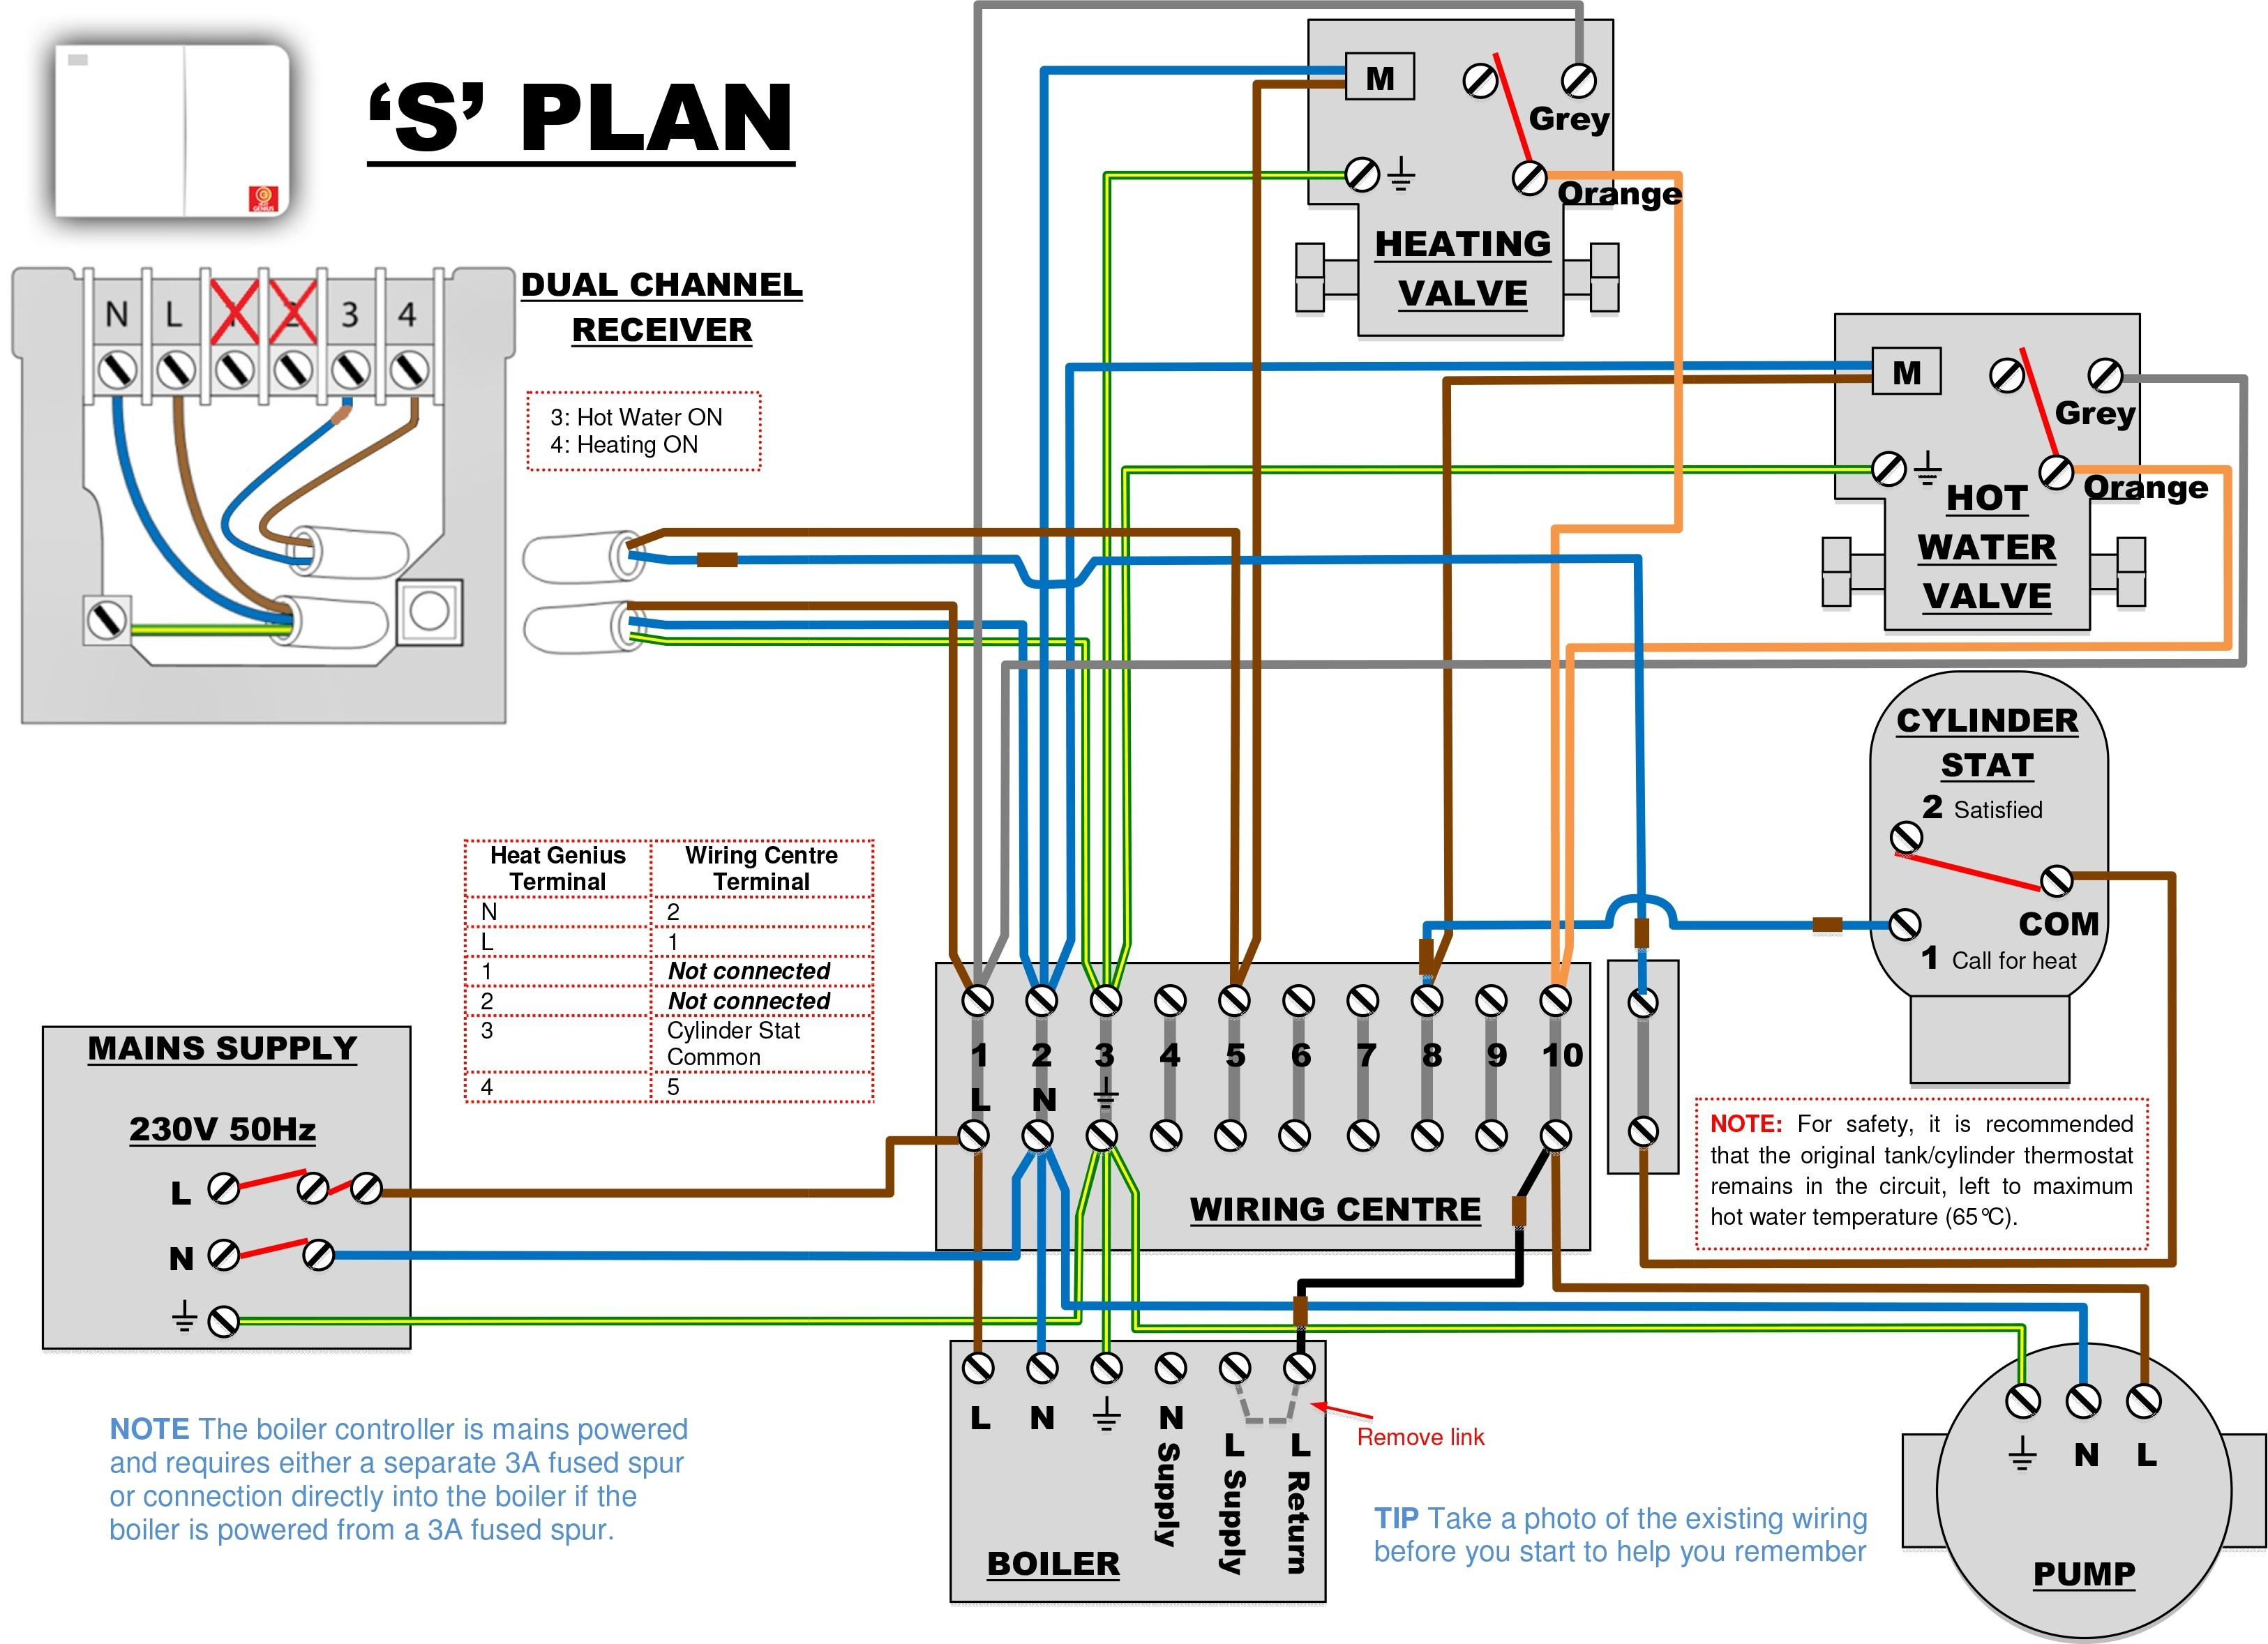 Nest Thermostat Wiring Diagram For Carrier Infinity - Wiring - Nest Wiring Diagram Furnace